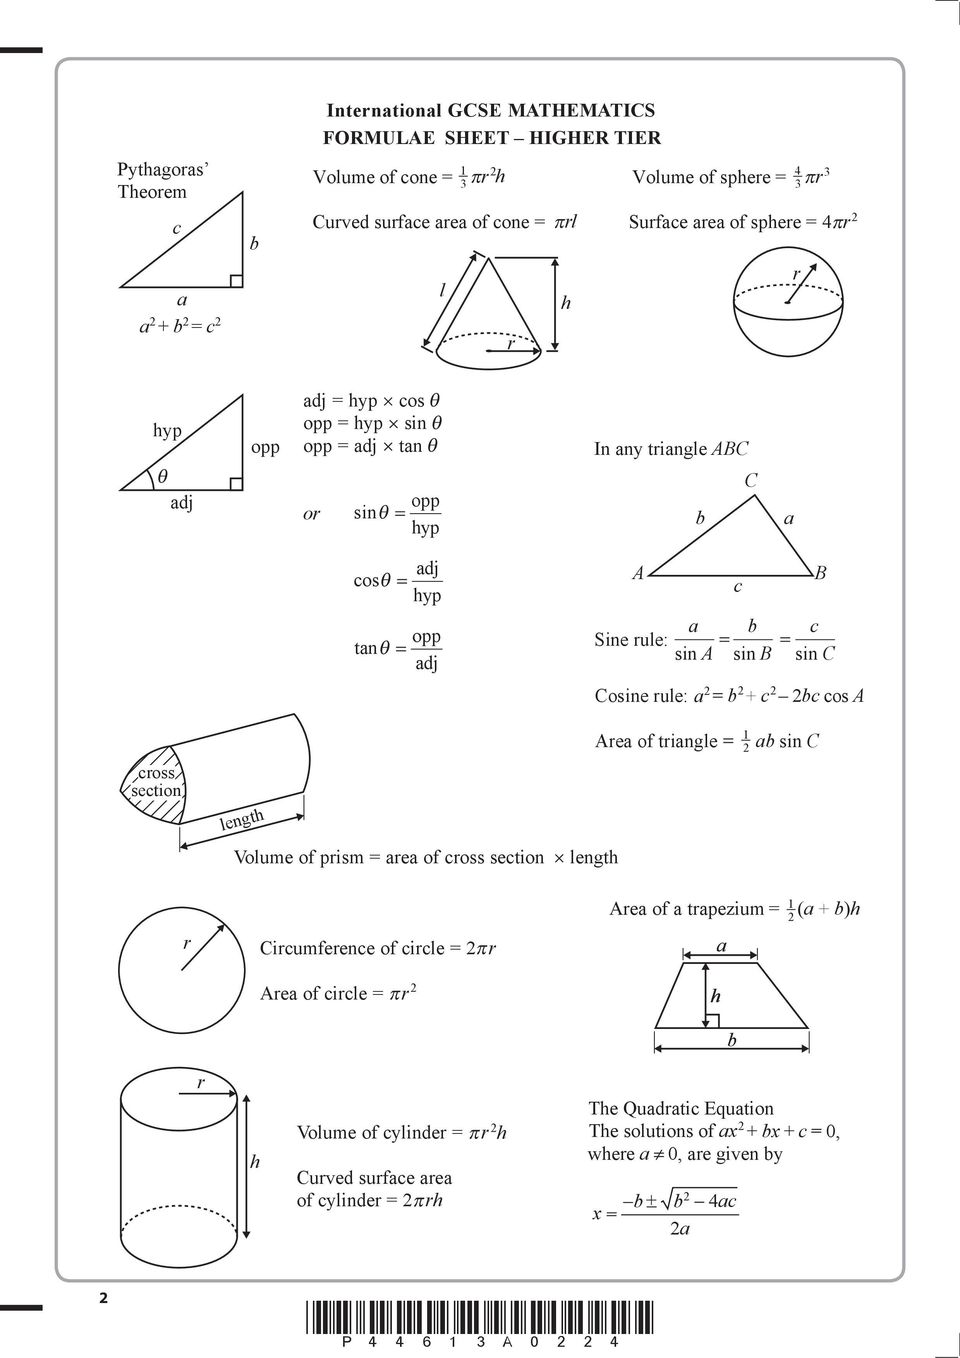 rule: a b 2 2 + c 2bc cos A c B cross section length Area of triangle 1 2 ab sin C Volume of prism = area of cross section length r Circumference of circle = 2 r Area of a trapezium = a 1 (a+b)h 2